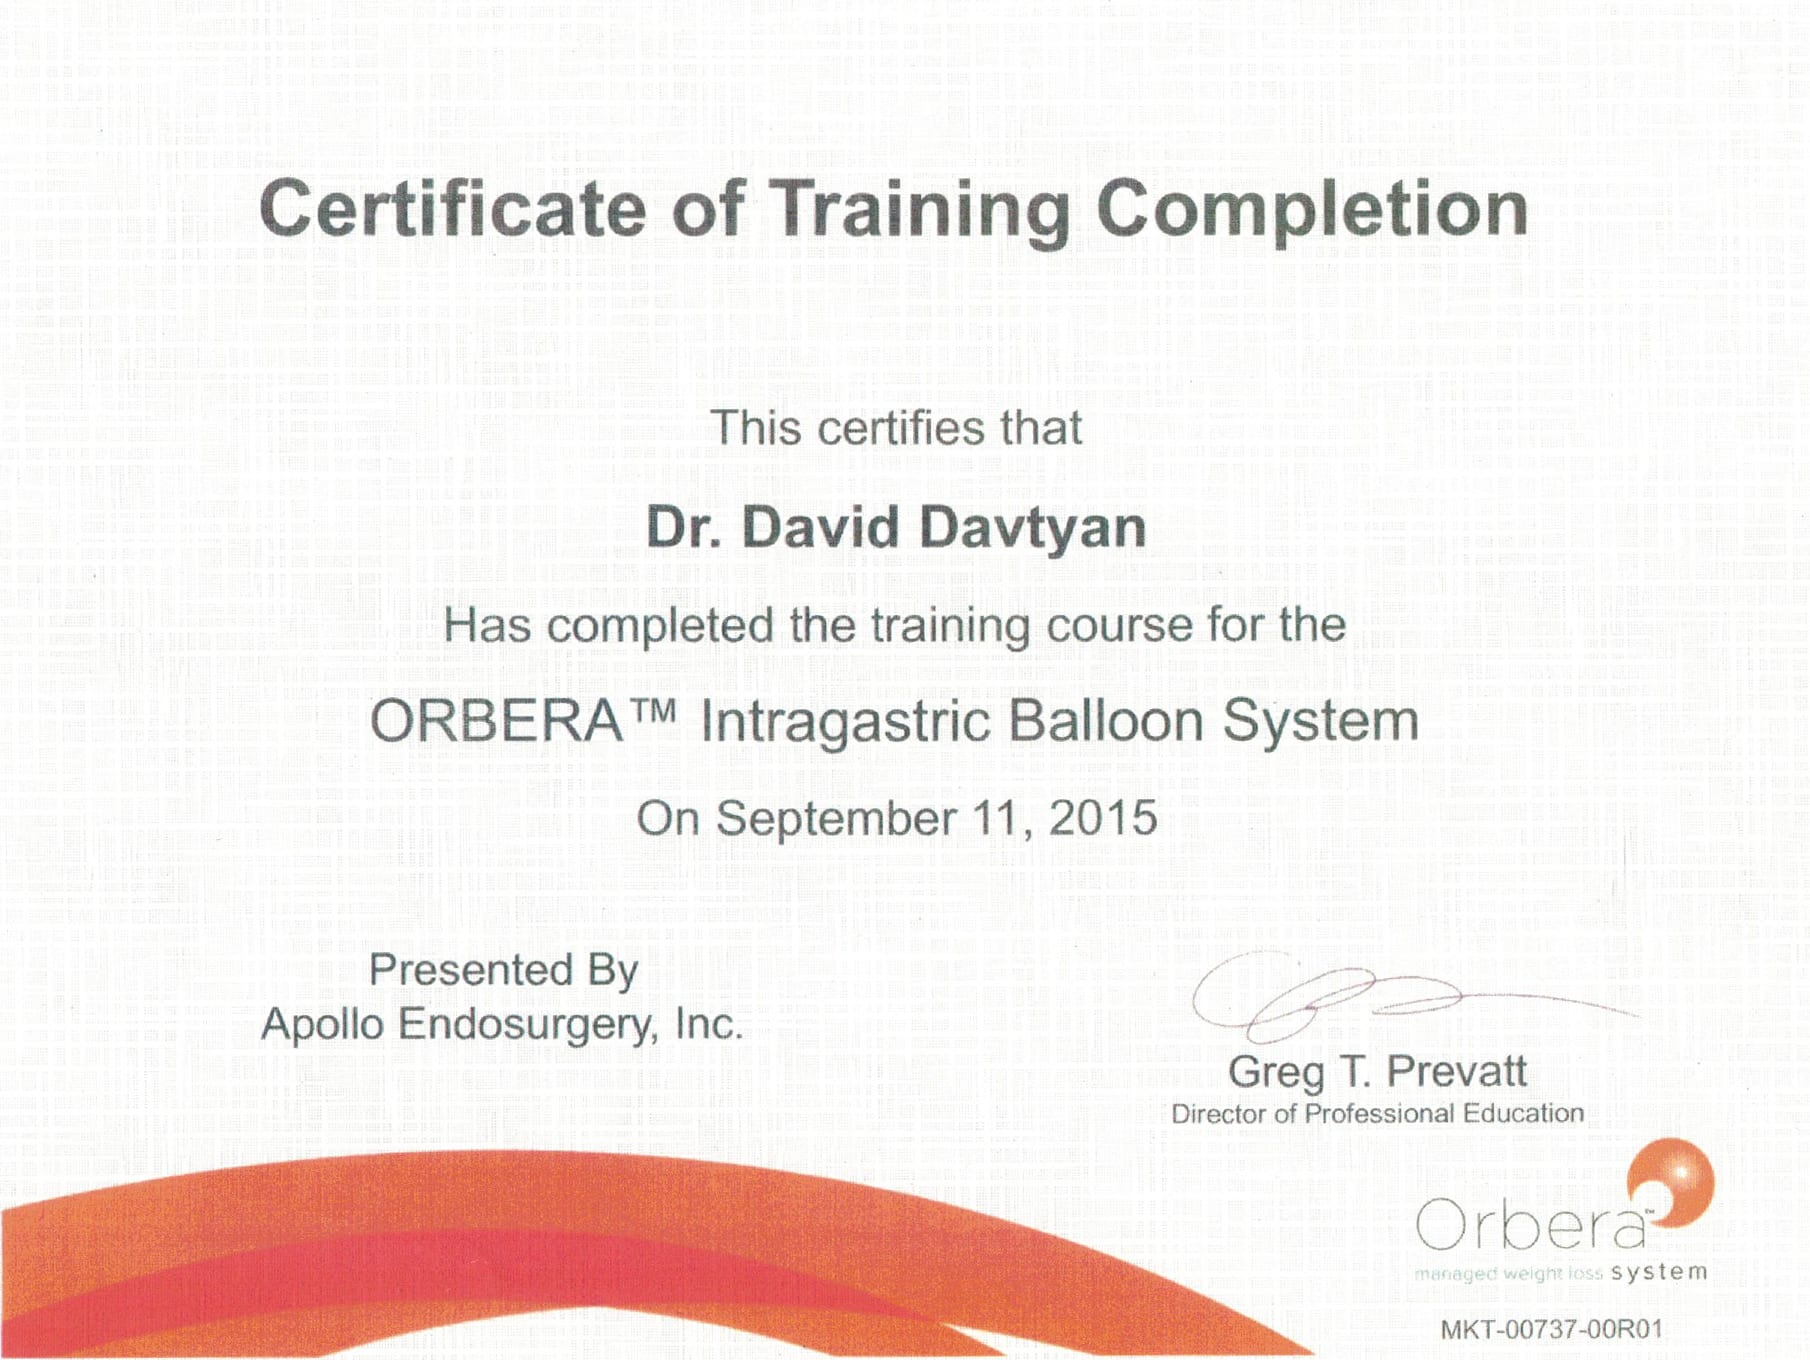 Dr. David G. Davtyan's 2015 Apollo Endosurgery, Inc. Certificate of Training Completion Orbera Intragastric Balloon System